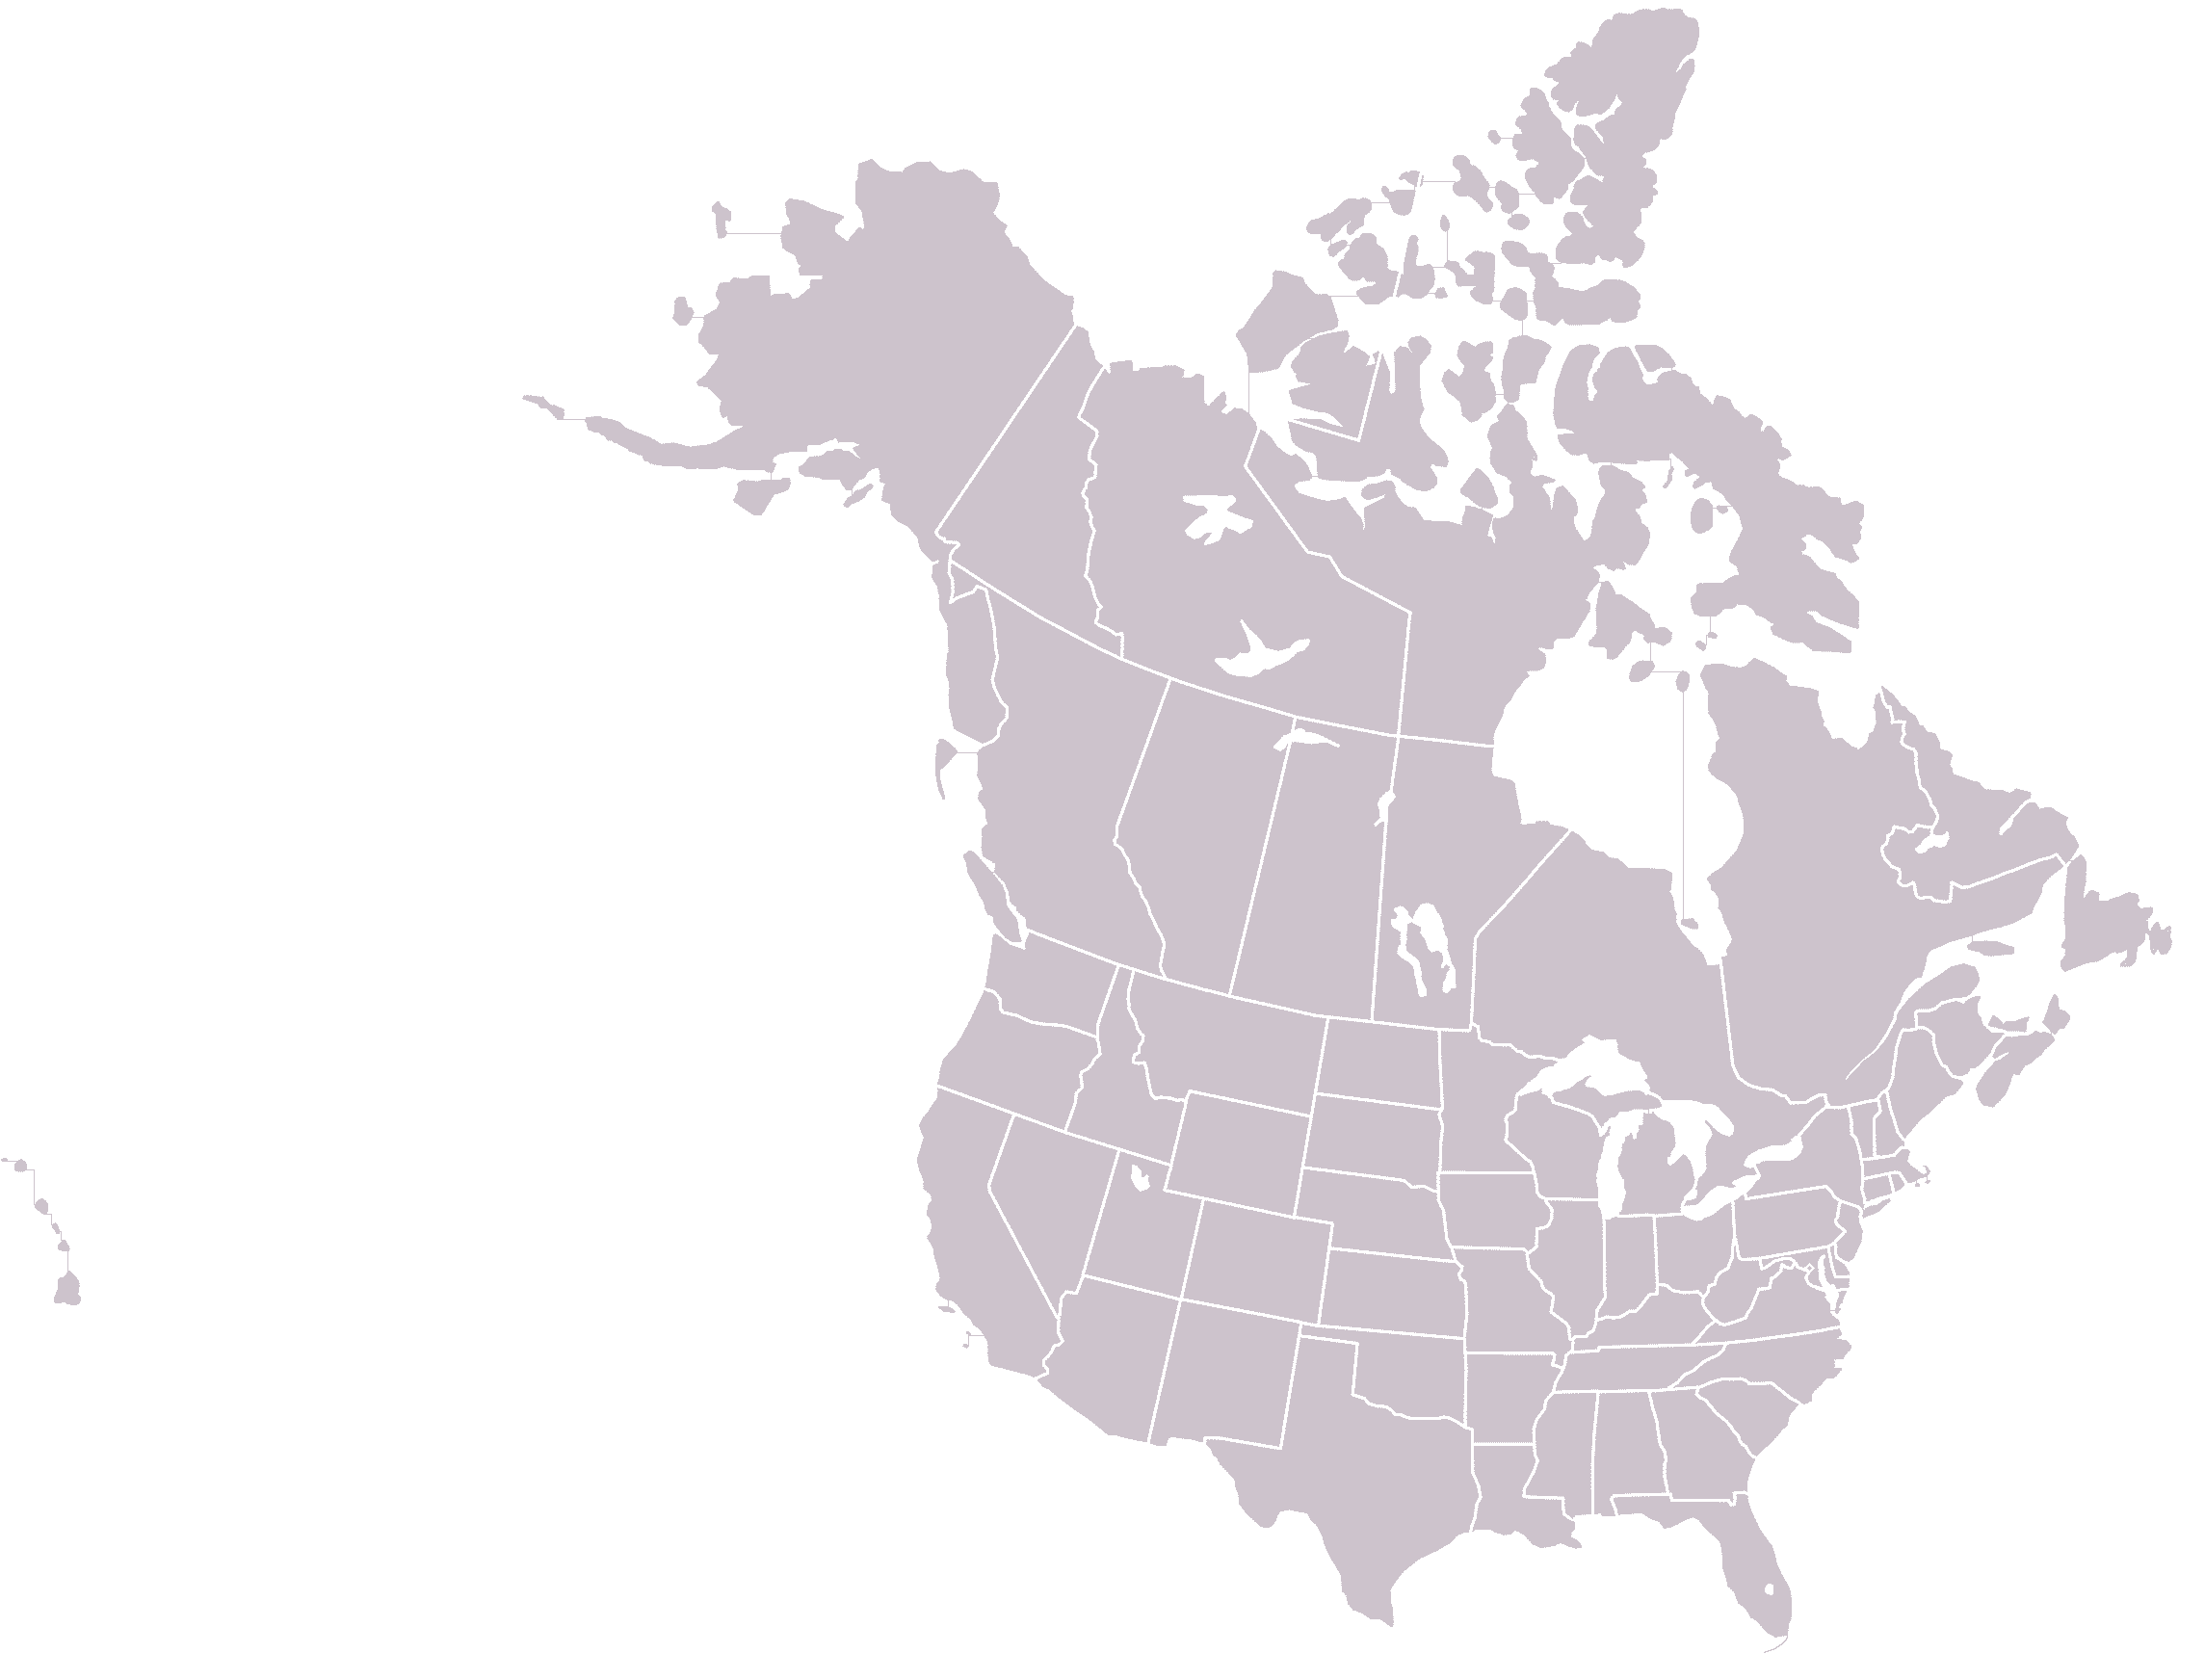 FileBlankMapUSAstatesCanadaprovincespng Wikimedia Commons - Map of canada provinces and us states